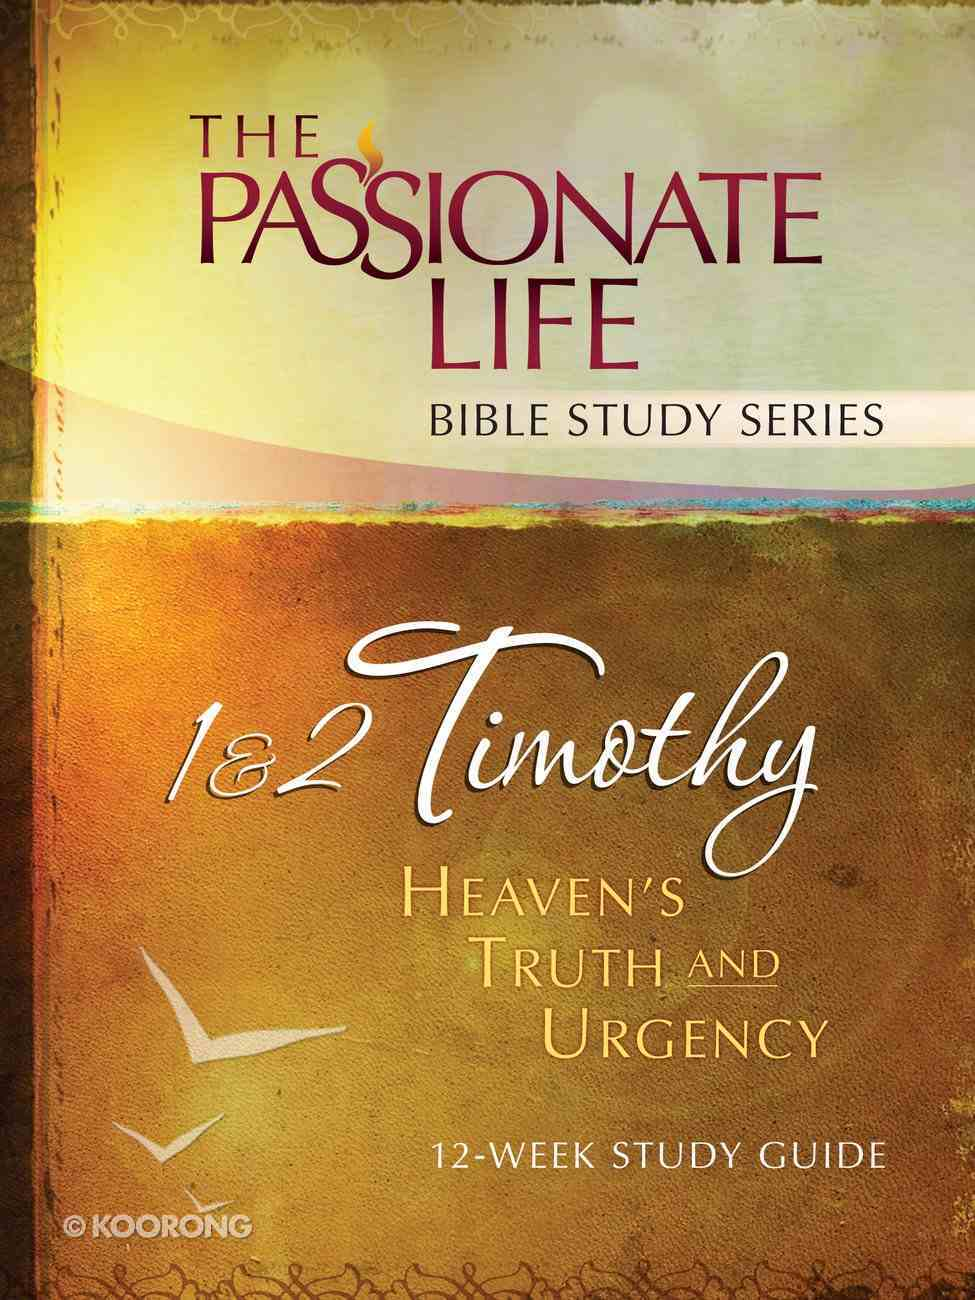 1 & 2 Timothy - Heaven's Truth and Urgency (The Passionate Life Bible Study Series) eBook